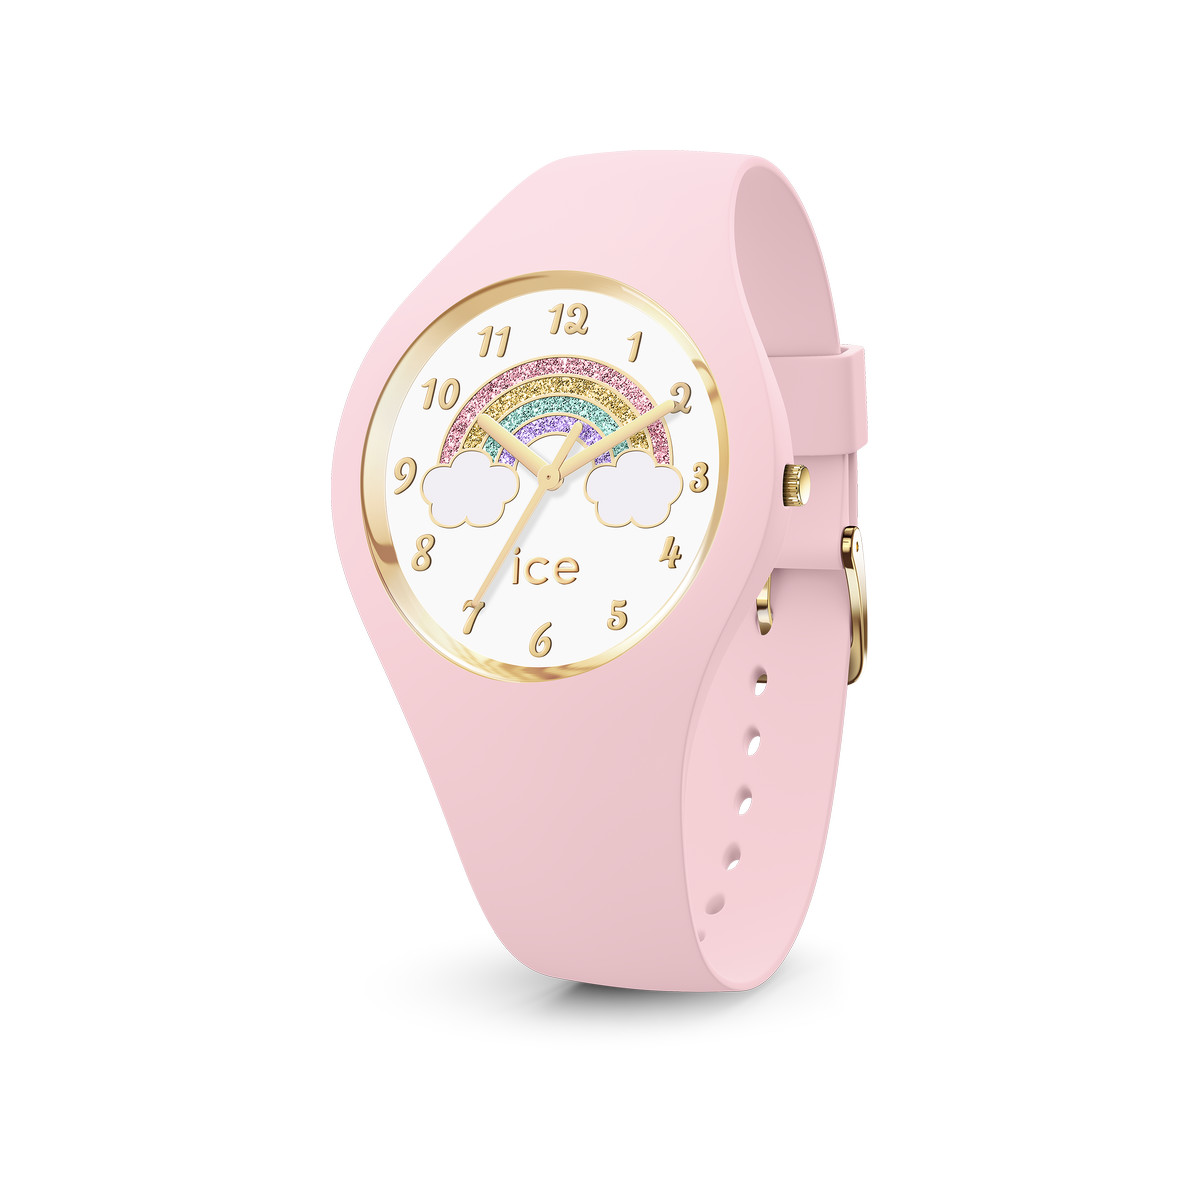 Montre ICE WATCH ICE fantasia Bracelet Silicone - vue 1